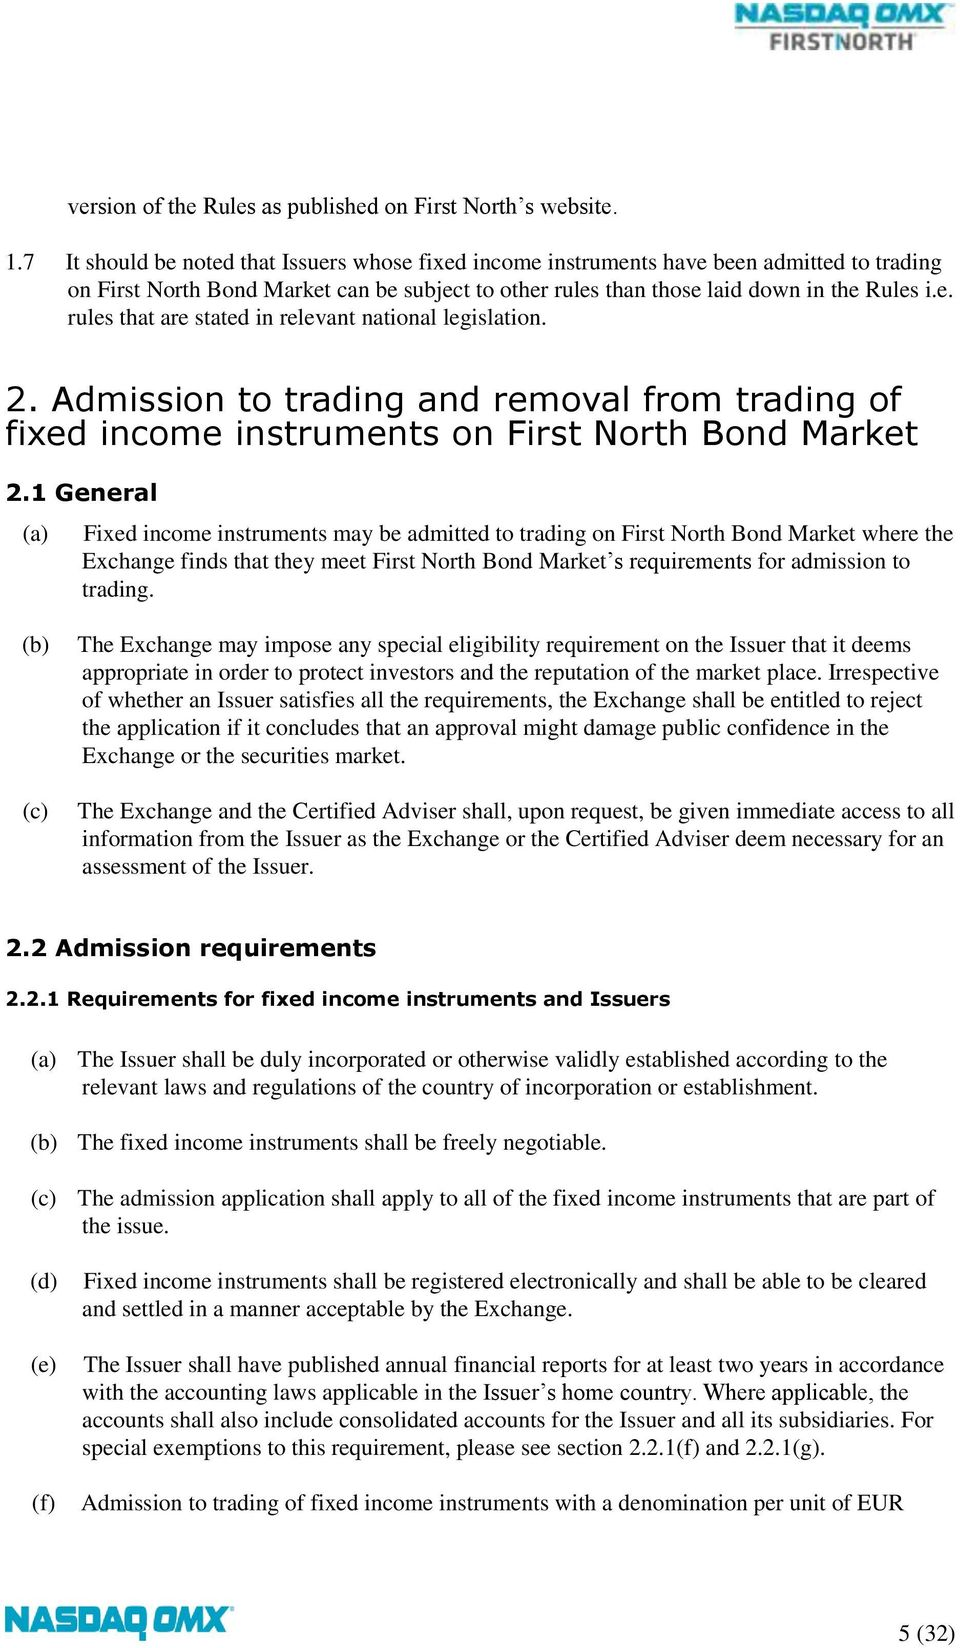 2. Admission to trading and removal from trading of fixed income instruments on First North Bond Market 2.